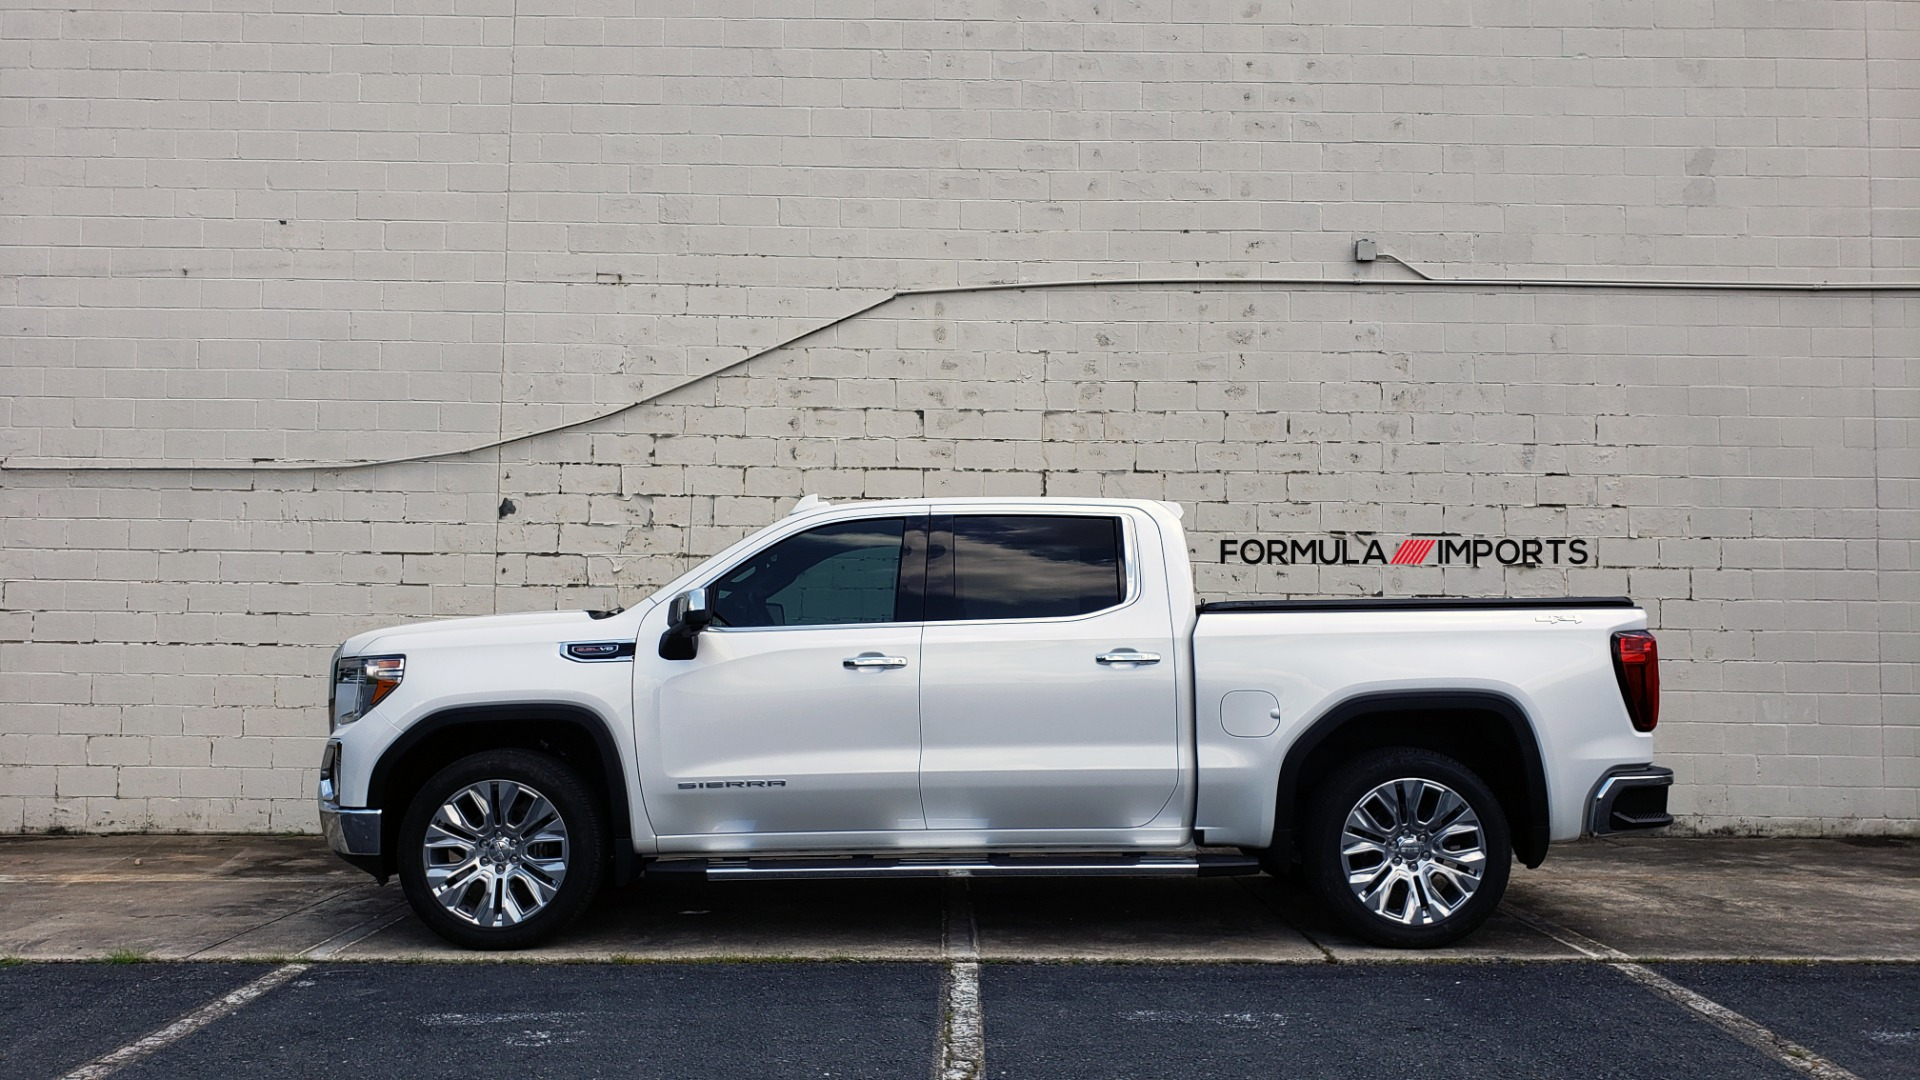 Used 2019 GMC SIERRA 1500 SLT 4WD CREWCAB / PREMIUM / 6.2L V8 / NAV / SUNROOF / VENT SEATS for sale Sold at Formula Imports in Charlotte NC 28227 95